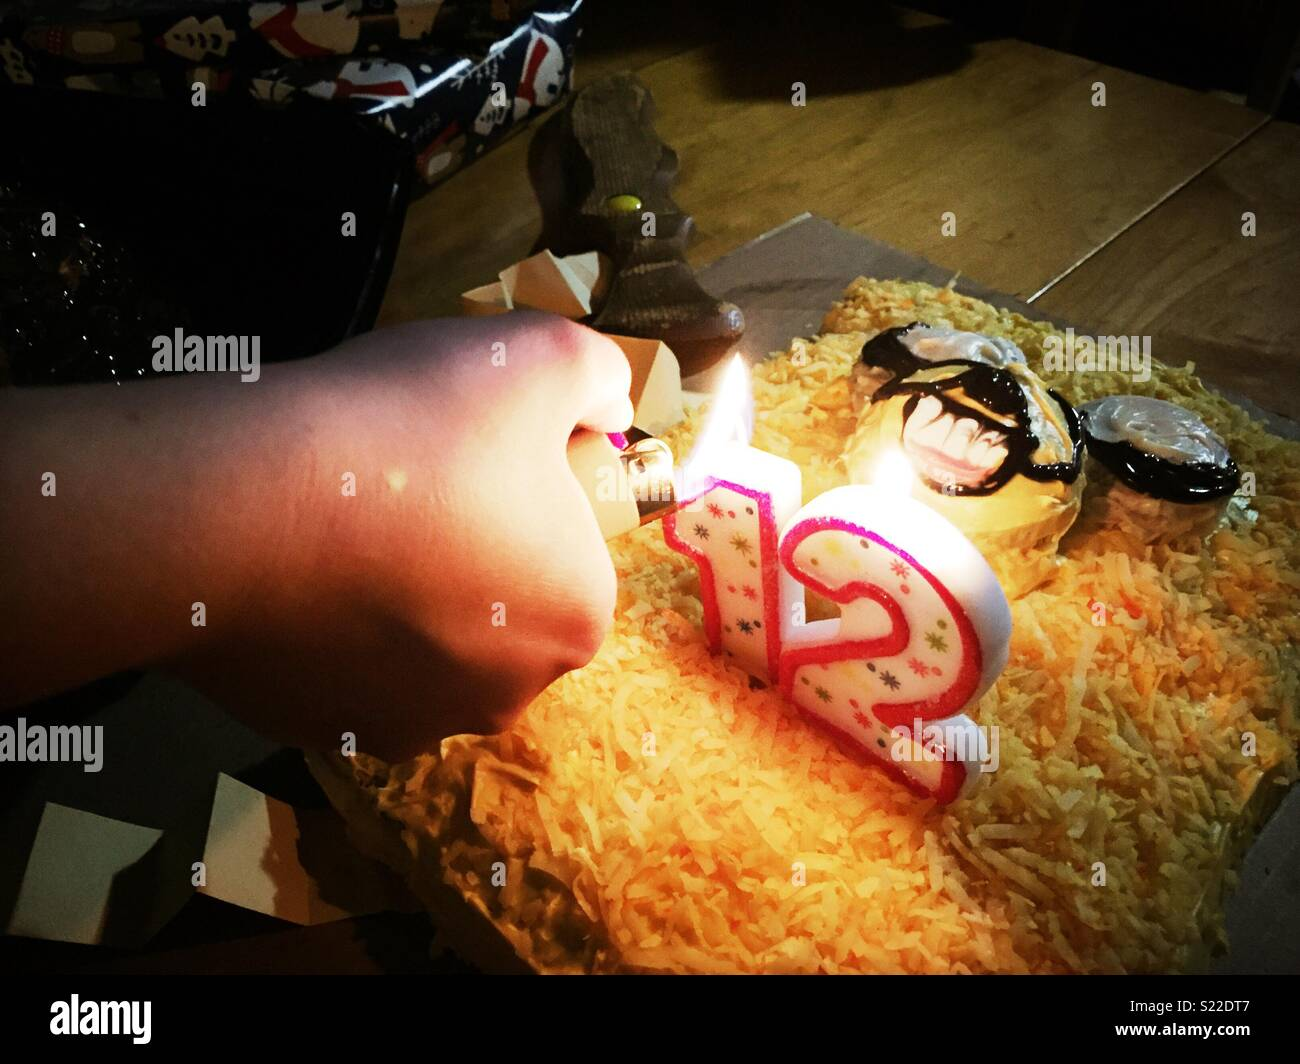 The hand of a twelve years old boy lighting the candles on his birthday cake - Stock Image